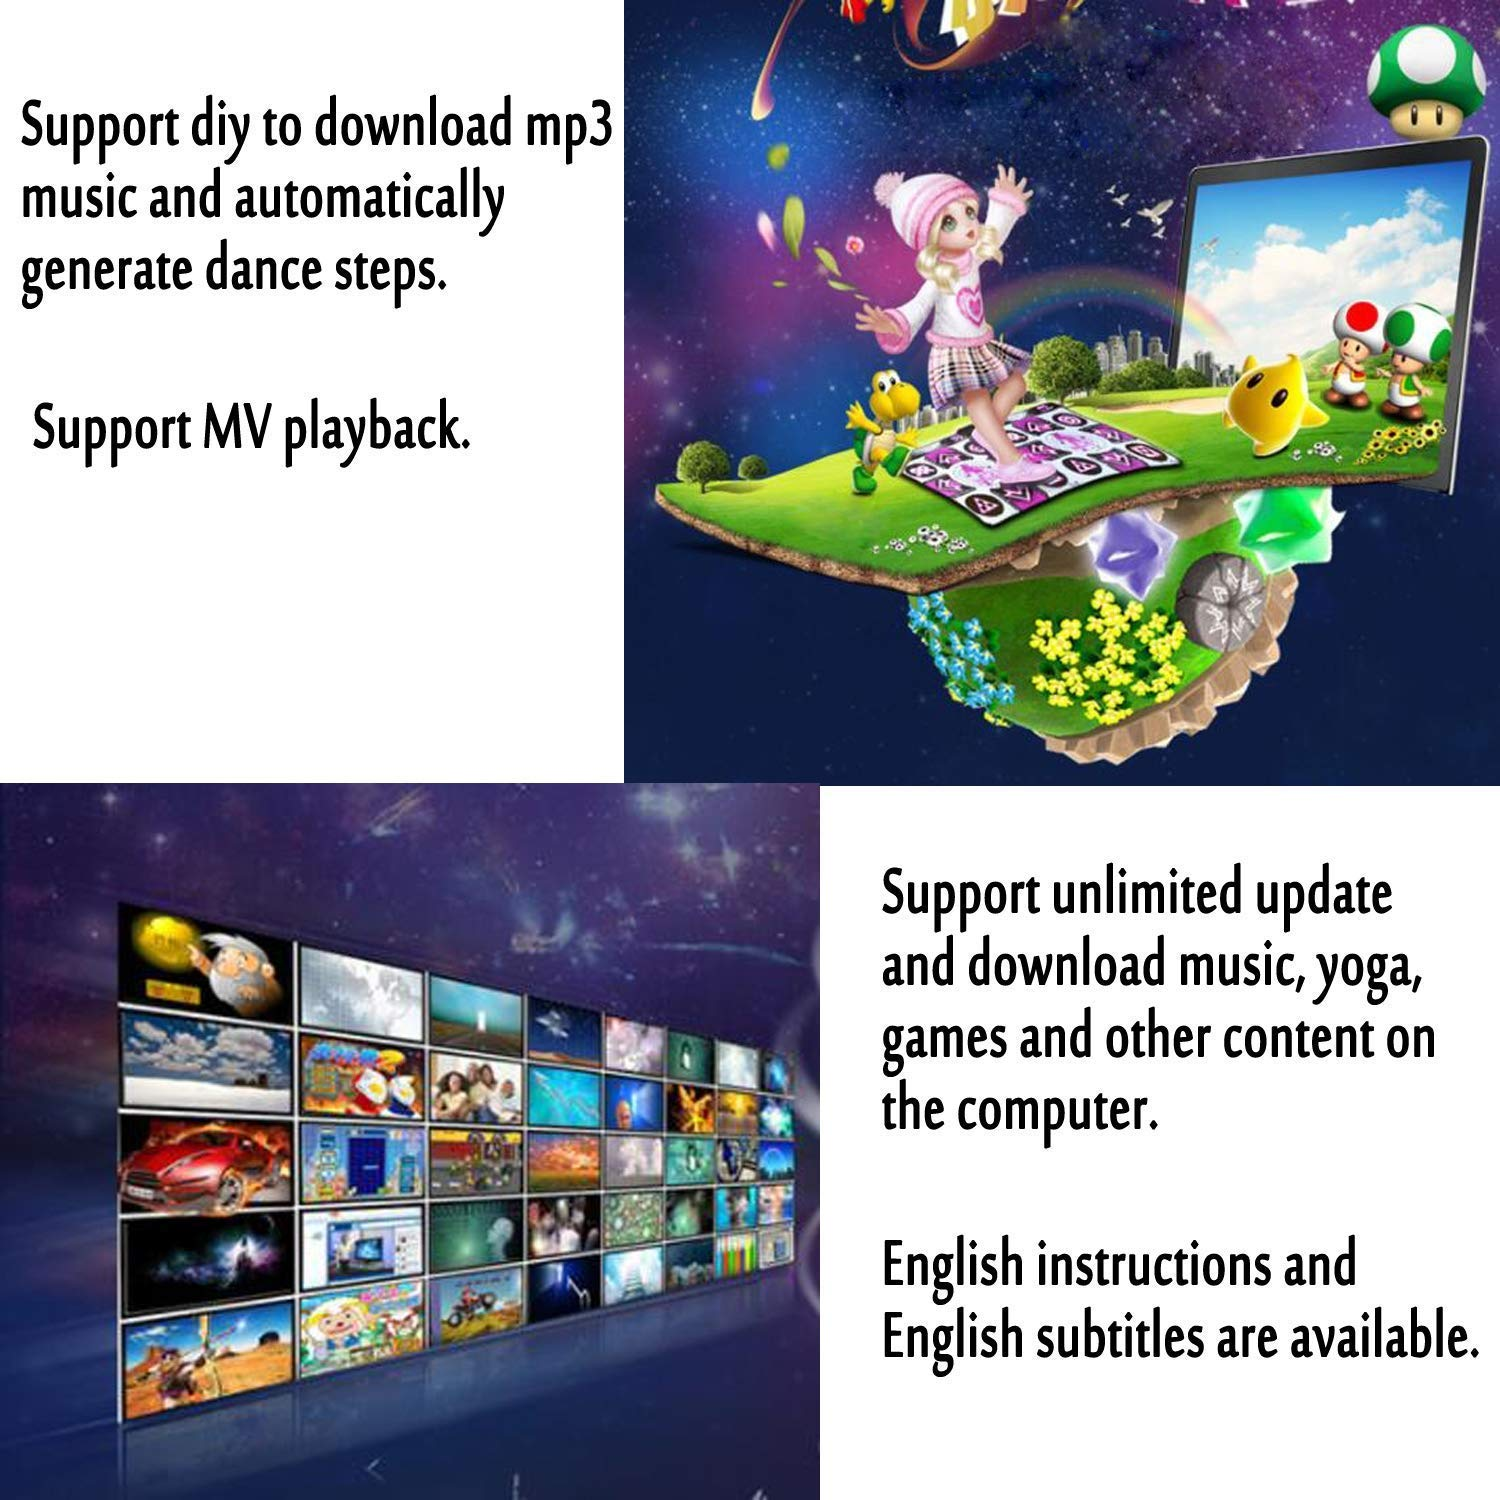 rui @ Double Wireless Dance Game Mat Pad Blanket, Somatosensory Game Console Dance Machine, Suitable For Children And Adults To Connect Tv And Computer Weight Loss Exercise Game Console(English Ver by RUIJING (Image #3)